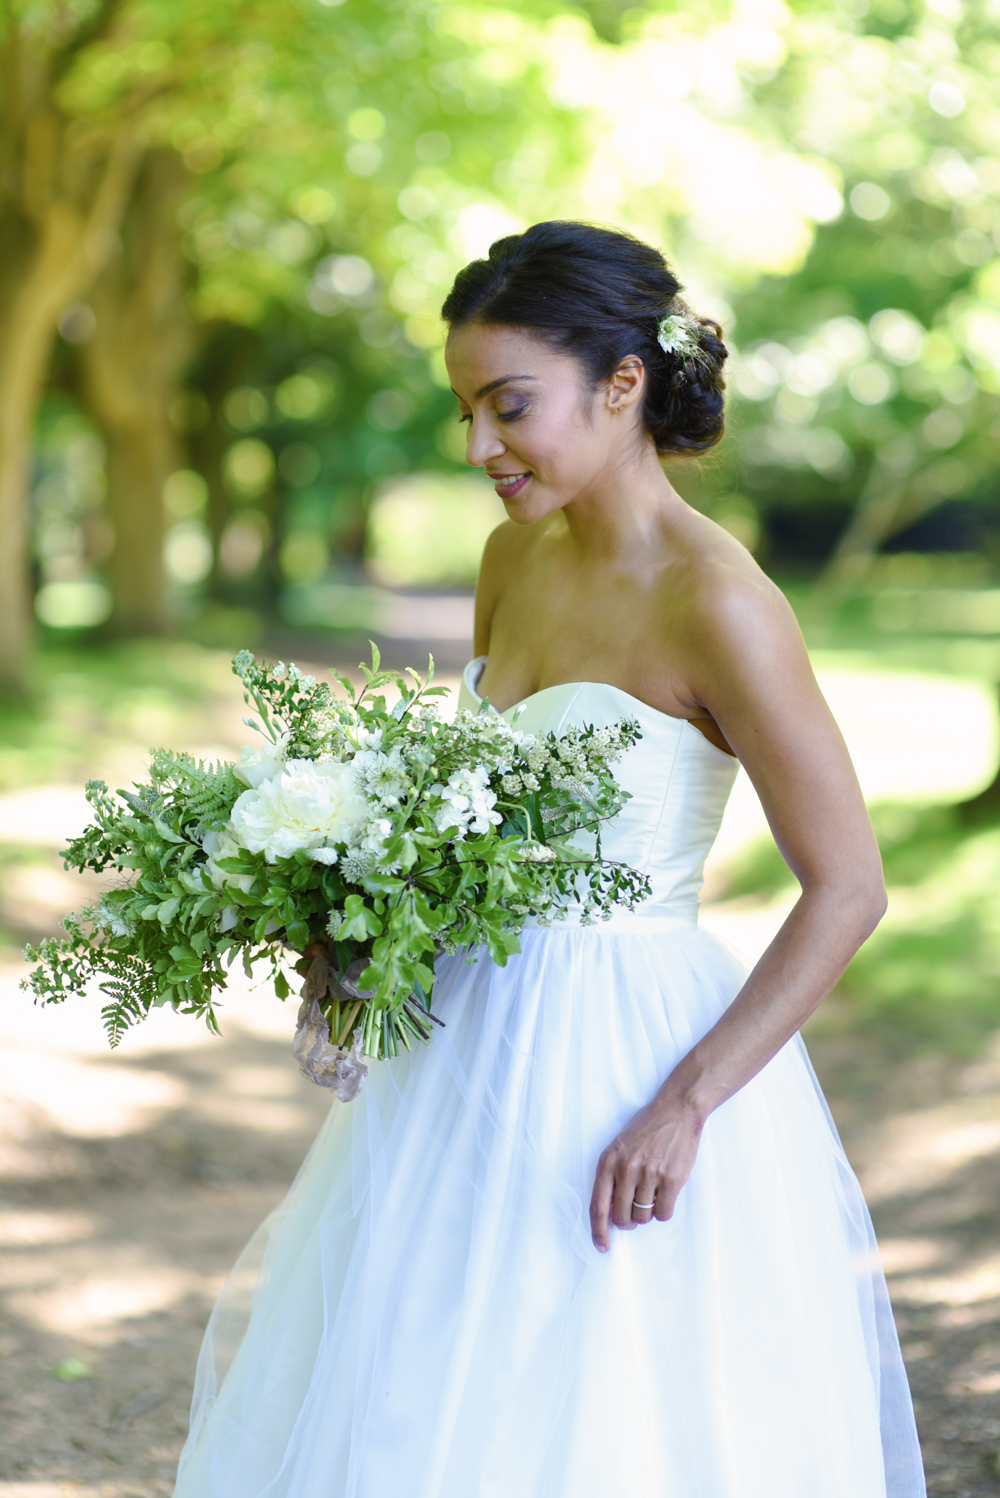 Natural Beauty Inspo For Brides With Olive & Darker Skin Tones